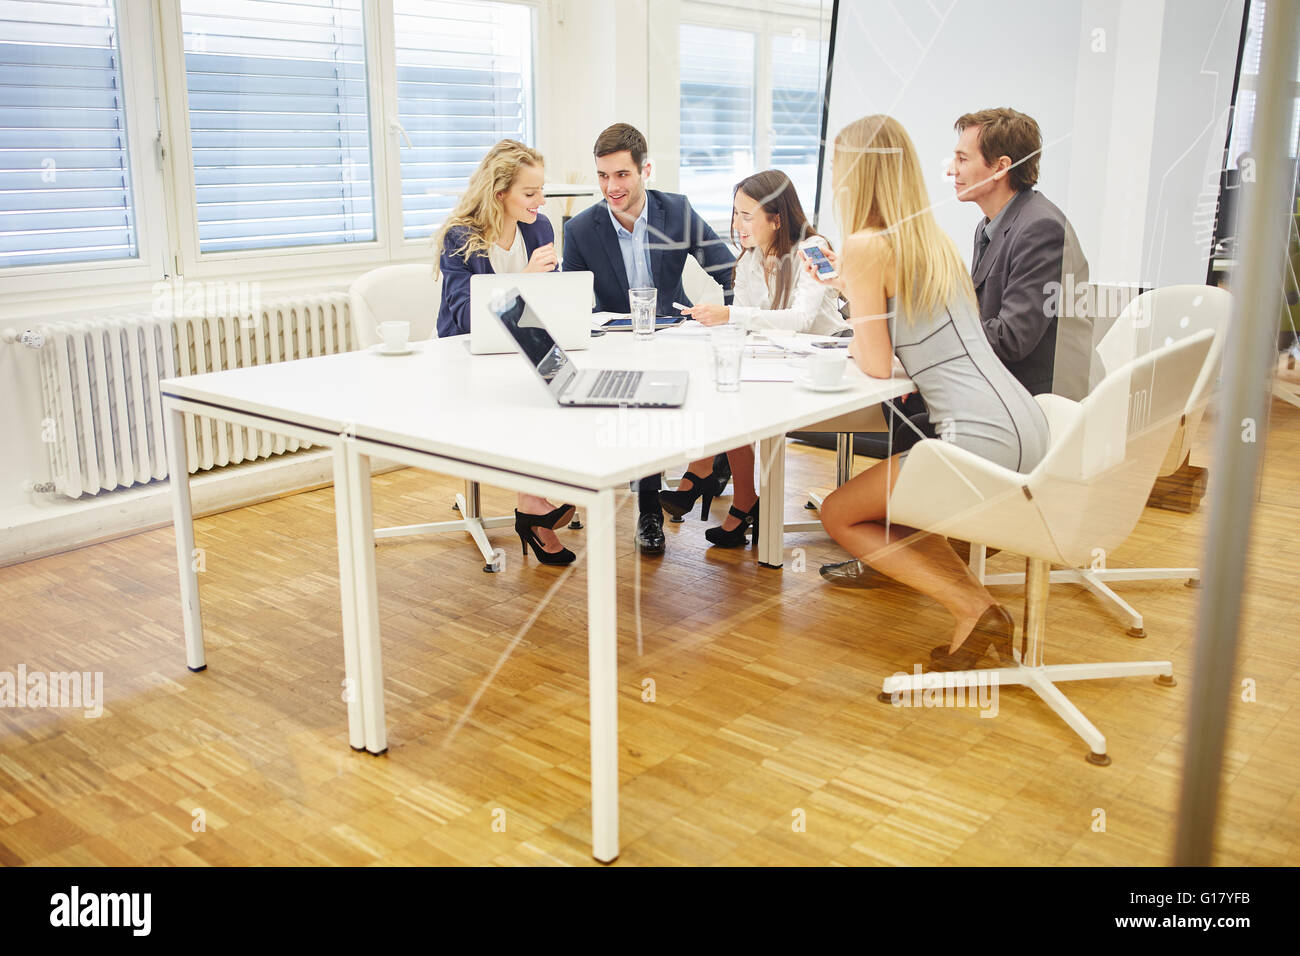 Business people discuss together a strategy in conference room - Stock Image